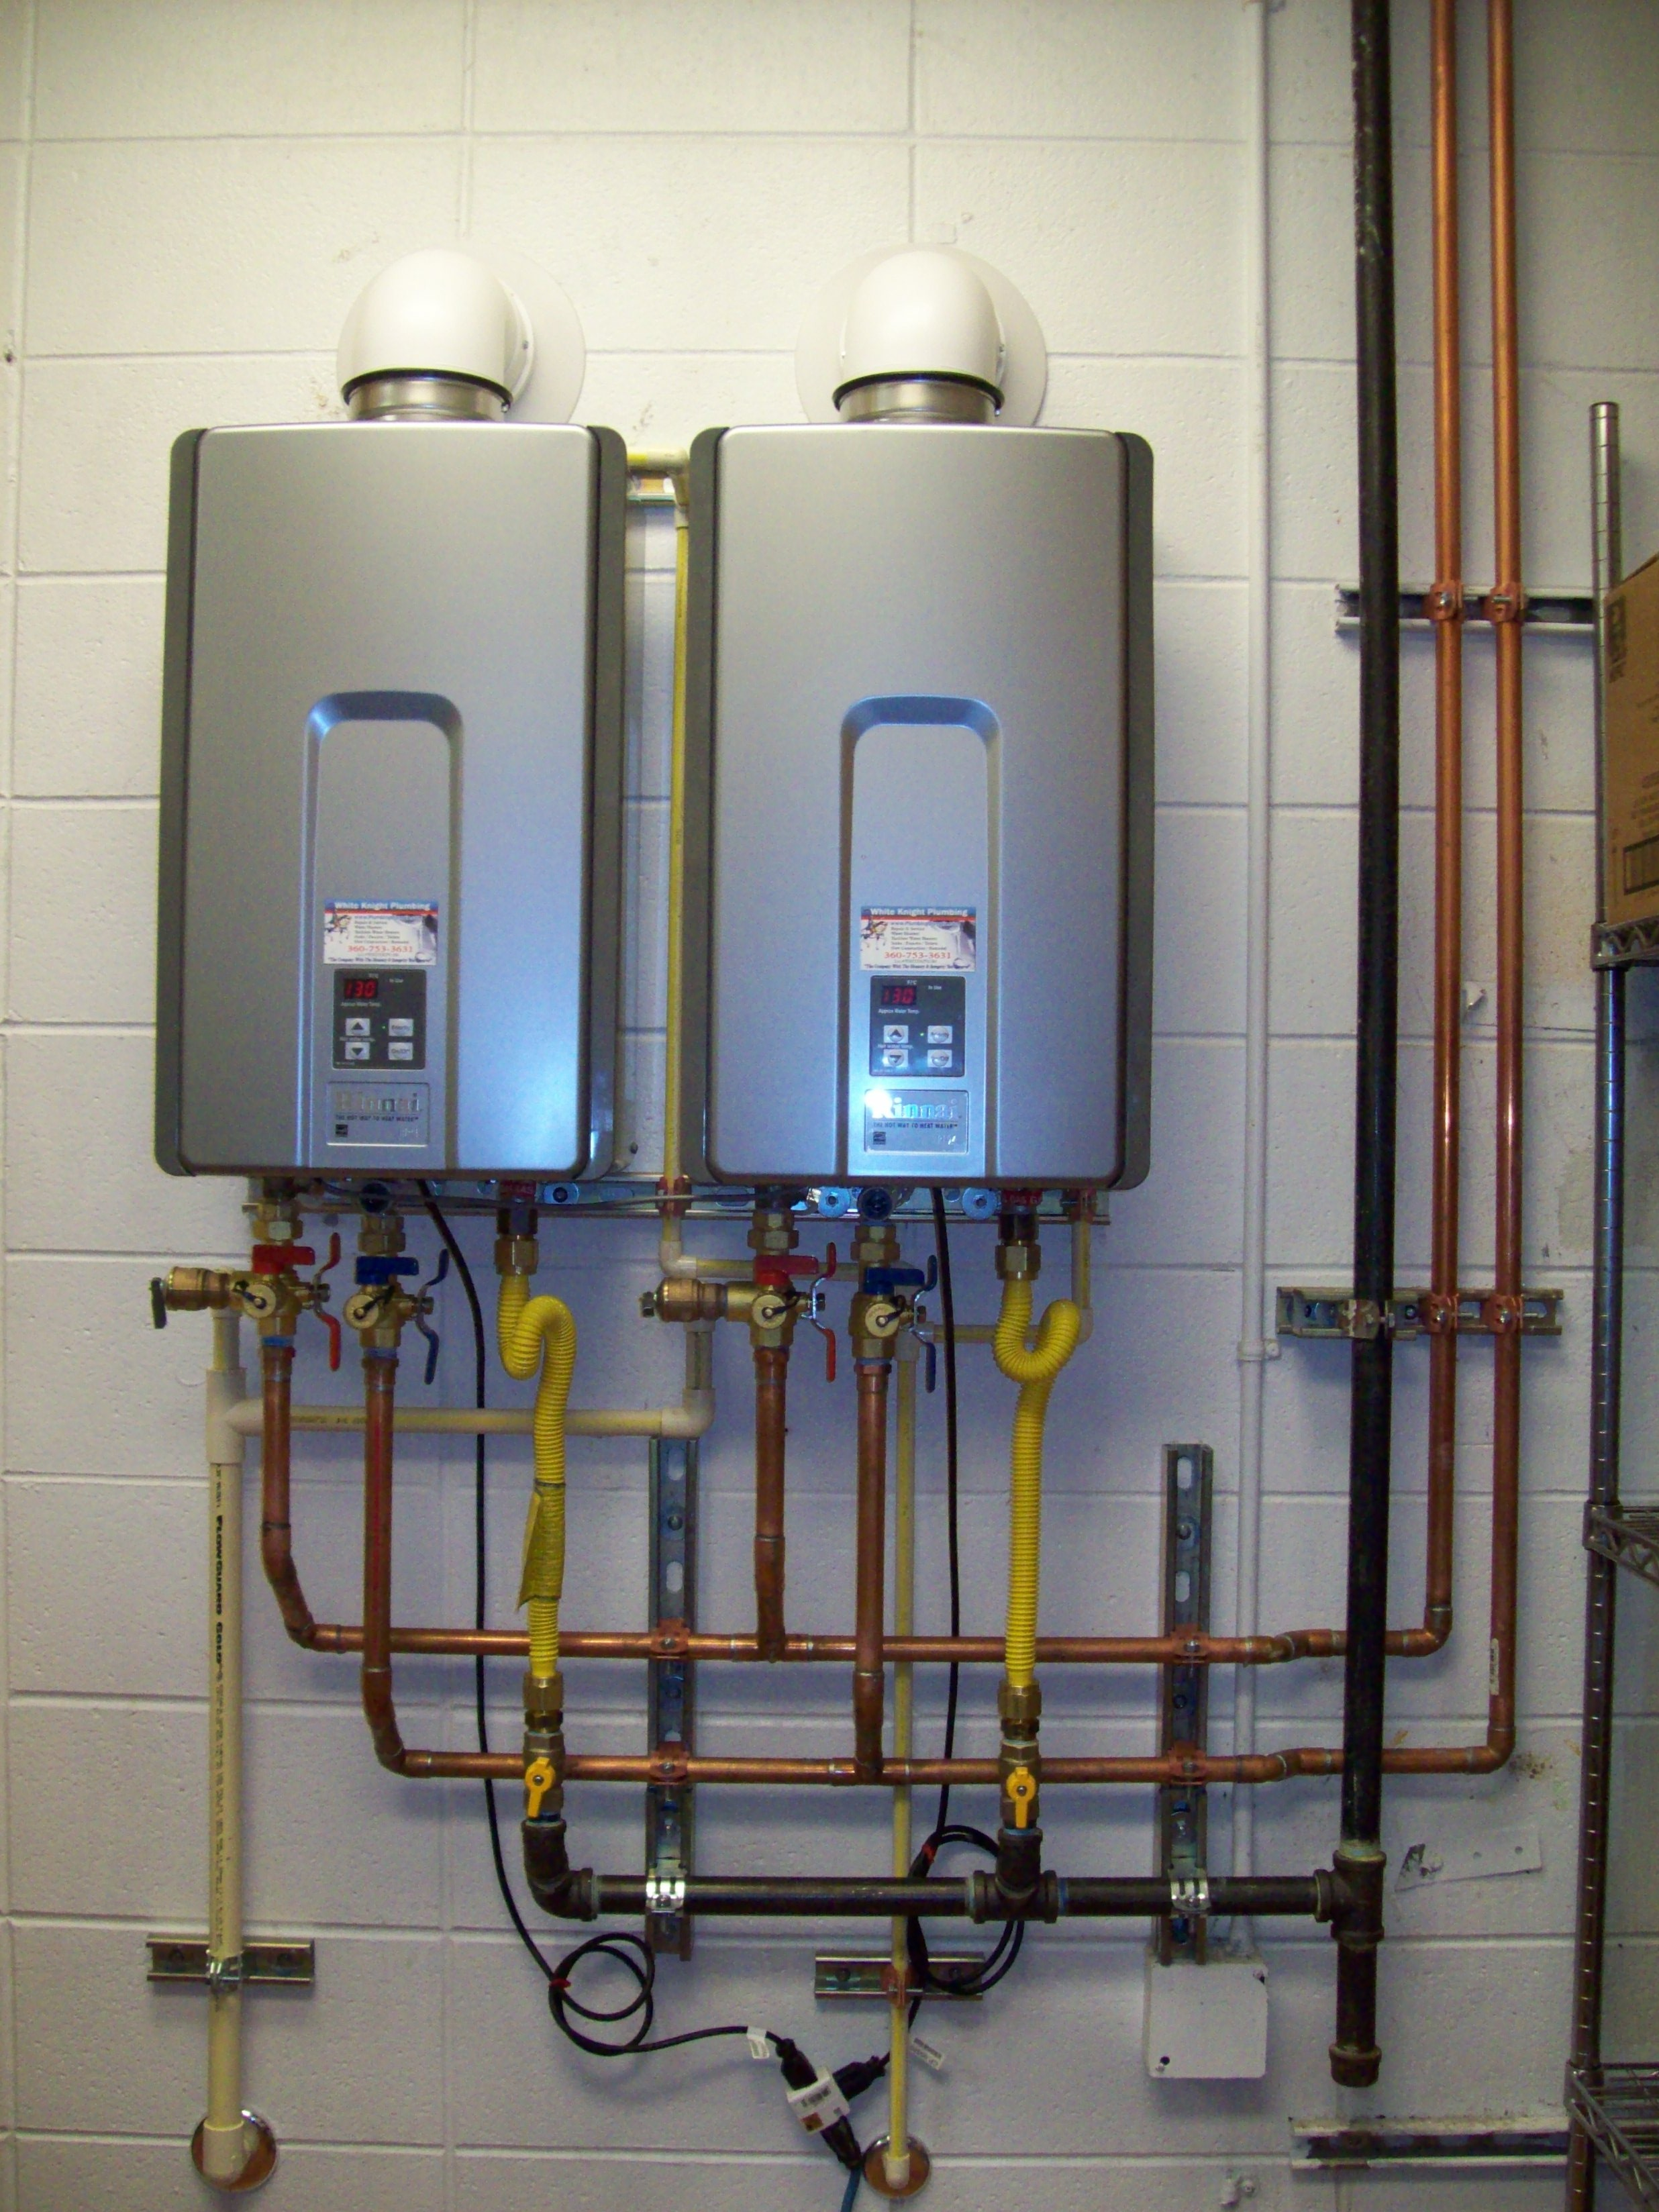 In Line Instant Hot Water : Tankless water heaters to save space and money candy